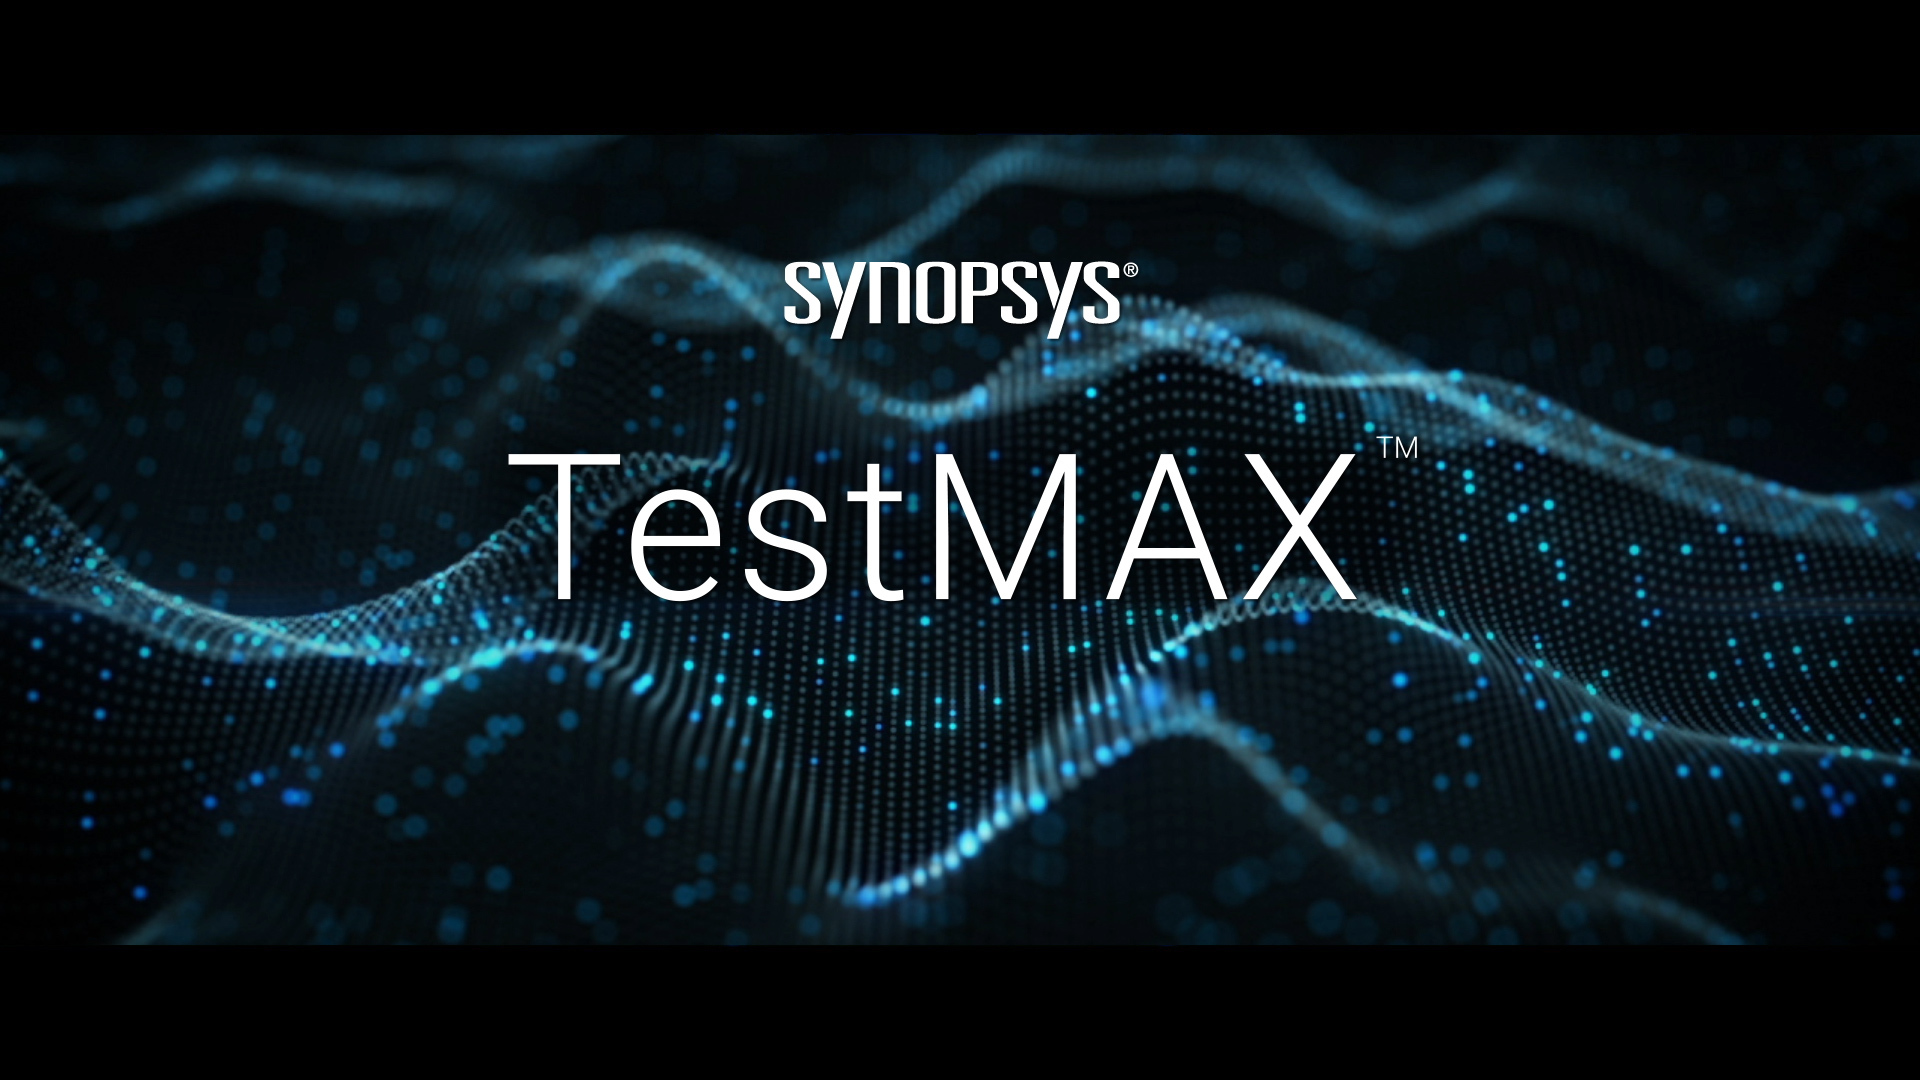 Introducing Synopsys TestMAX – Redefining Expectations for Test